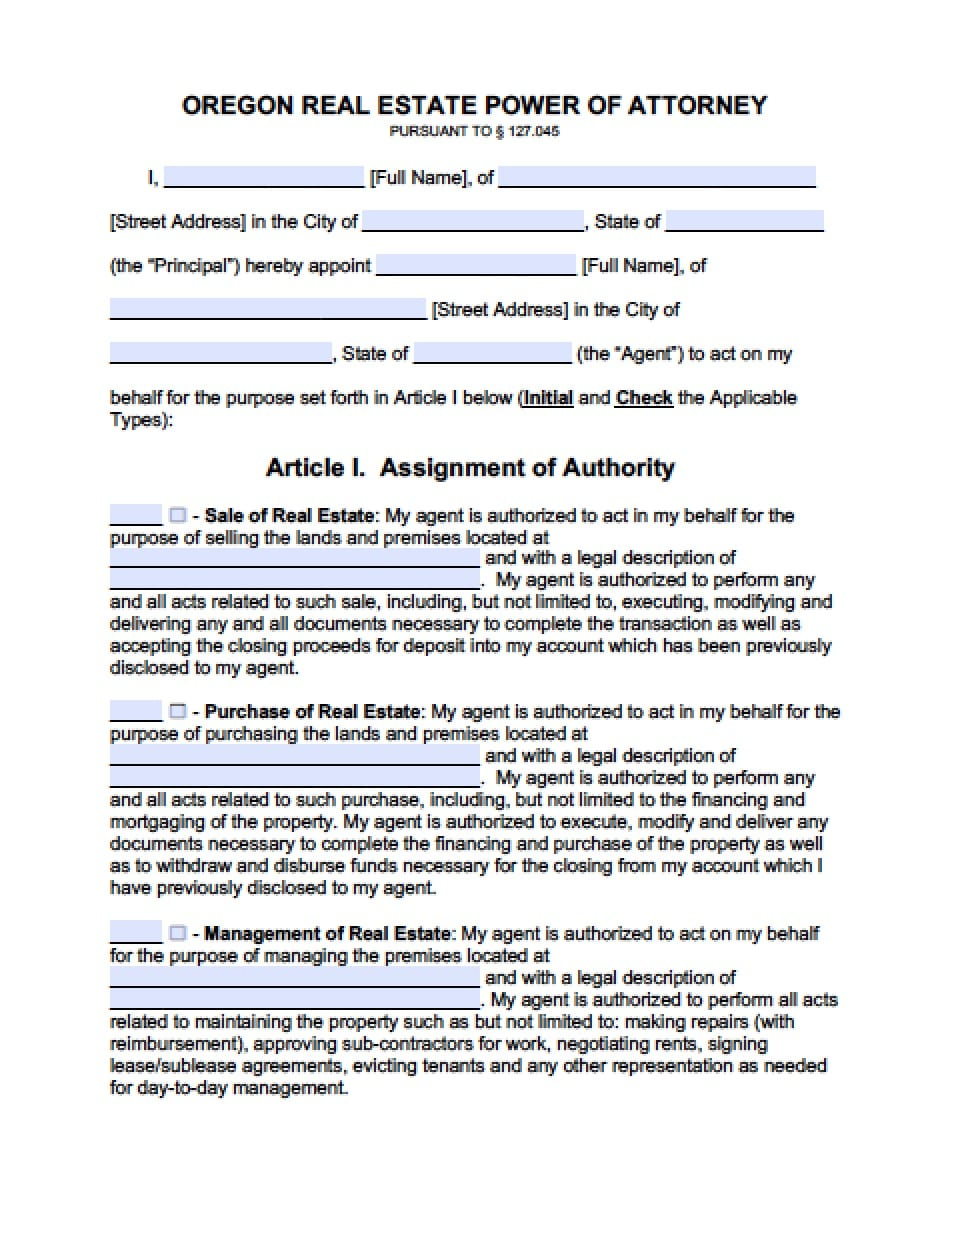 power of attorney oregon form  Oregon Real Estate ONLY Power of Attorney Form - Power of Attorney ...